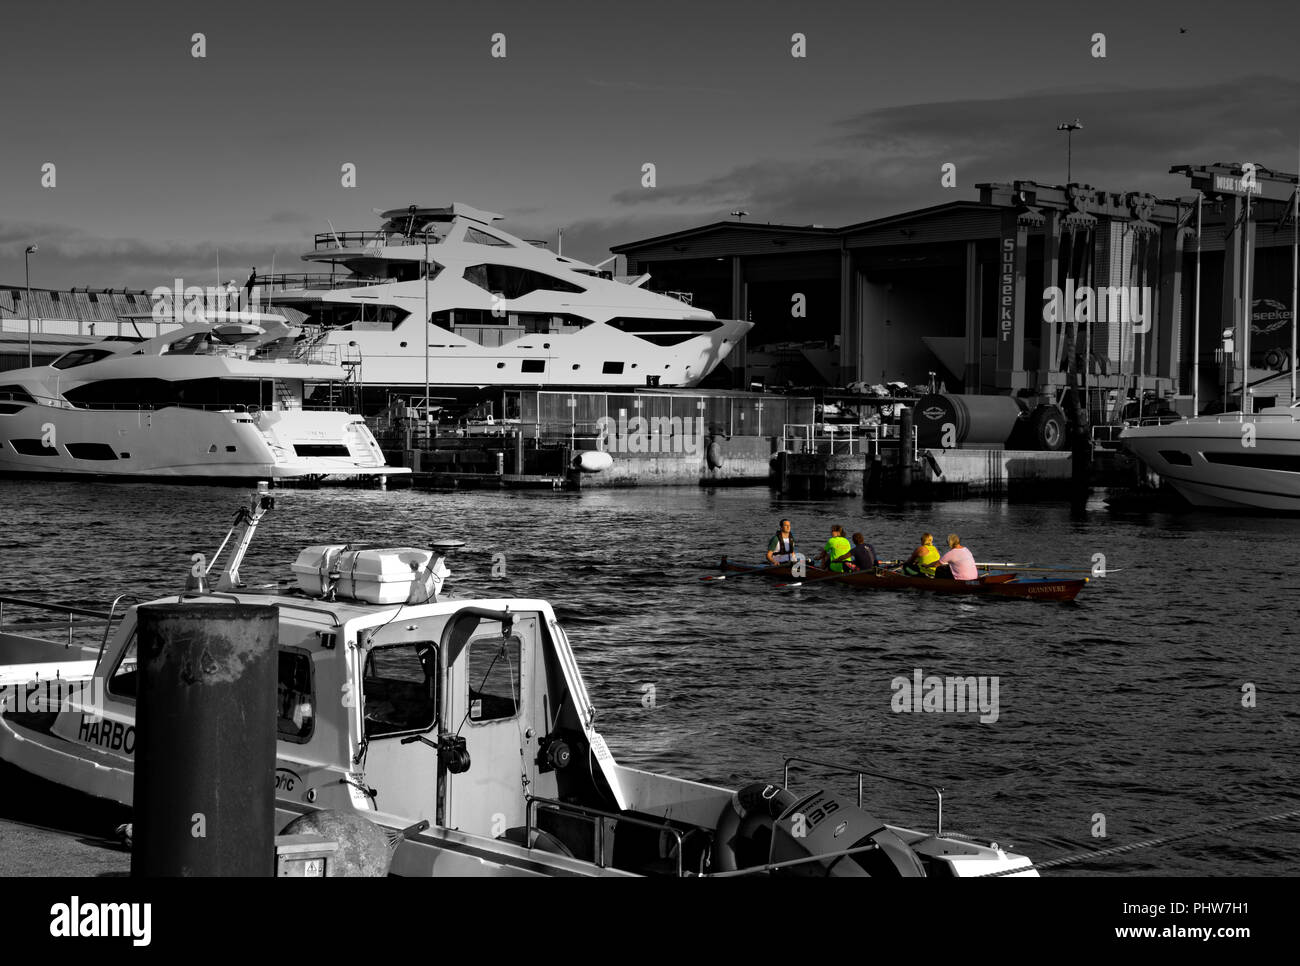 Poole, Dorset, England. A training session for a Coxed 4 in Guinevere run past the Sunseeker factory in Poole Dorset, England - Stock Image